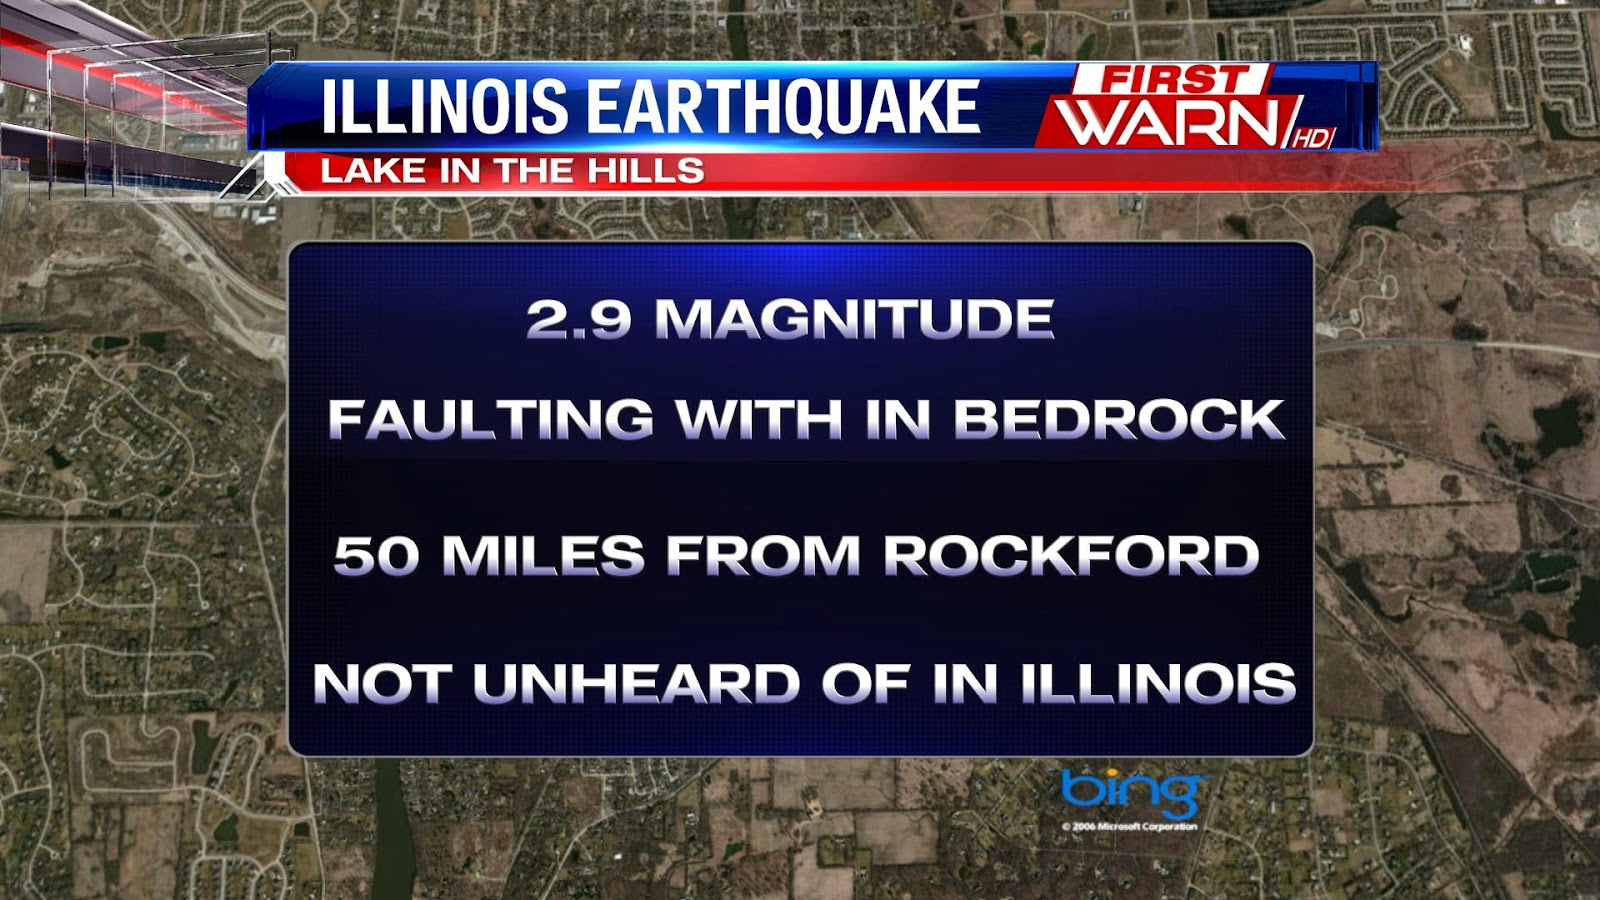 First Warn Weather Team Earthquake Near The Stateline